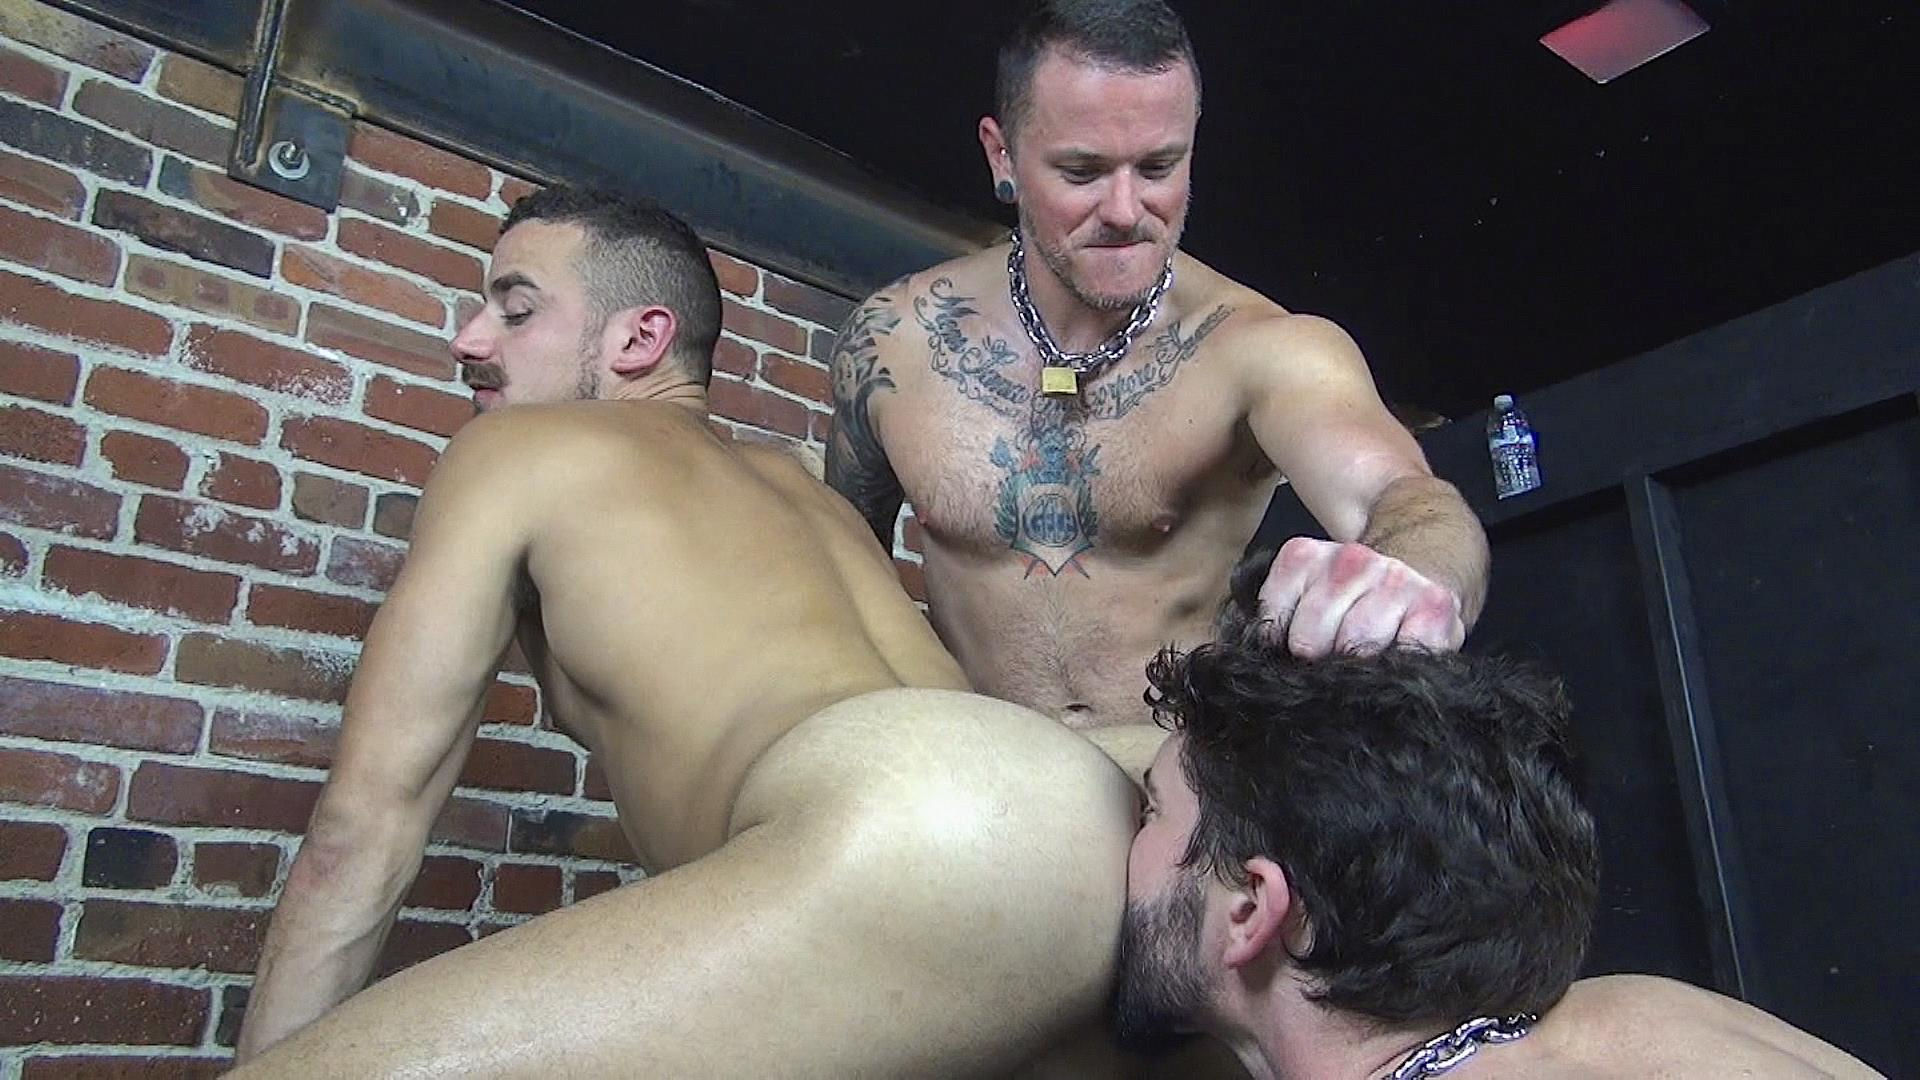 Raw Fuck Club Max Cameron and Jackson Fillmore and Leon Fox Bareback Double Penetration Amateur Gay Porn 08 Getting Double Penetrated Bareback By A Big Uncut Cock